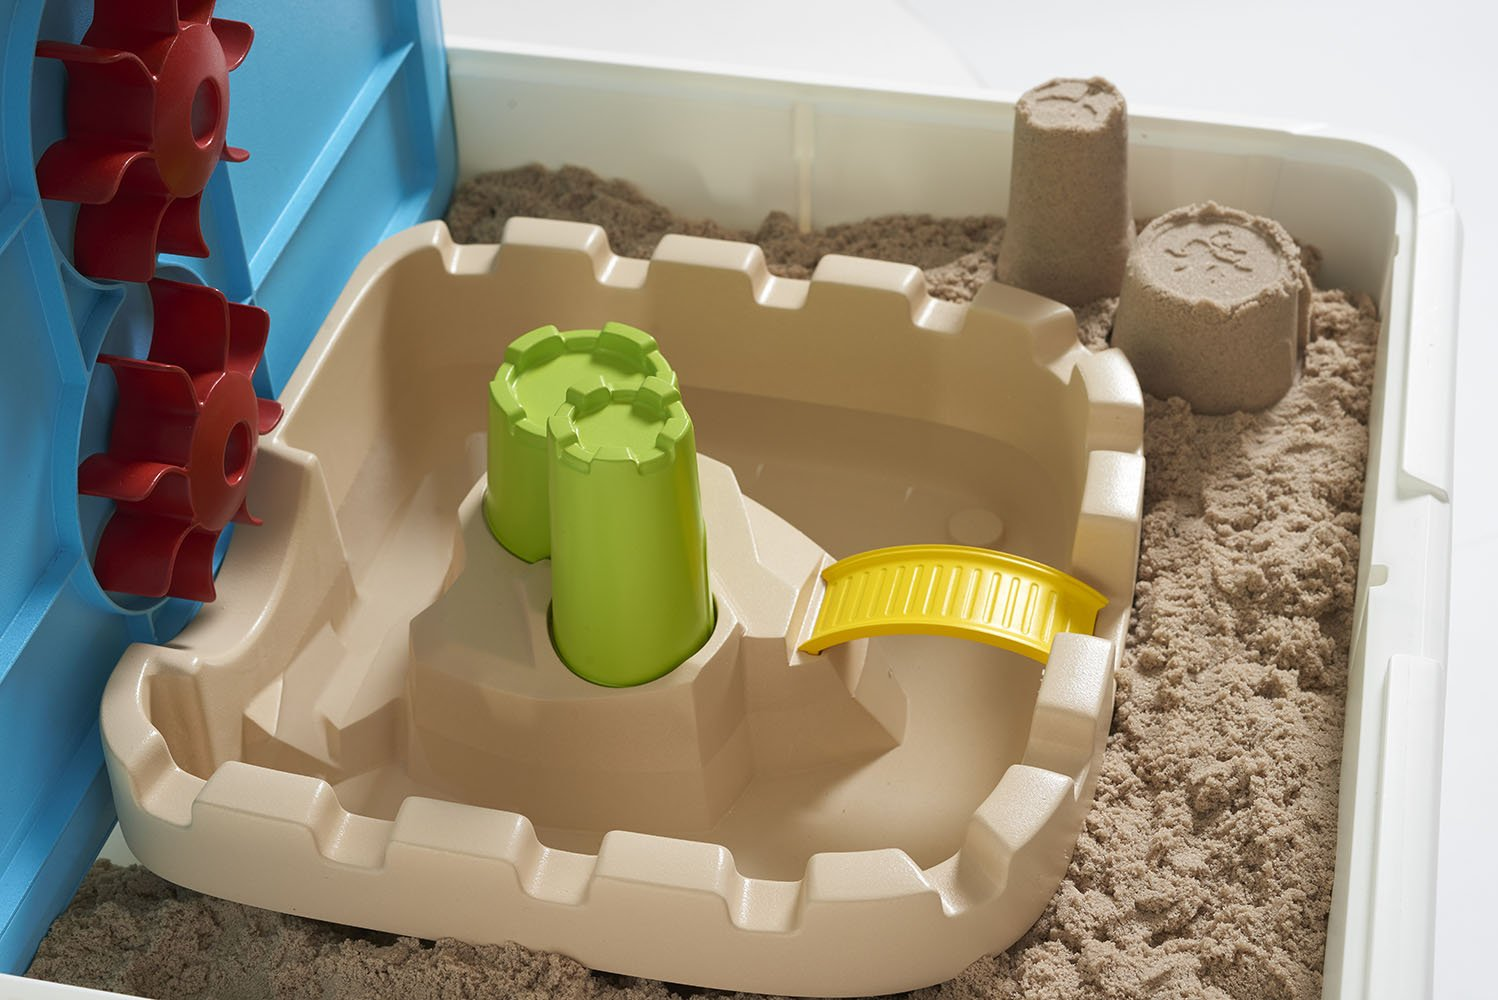 Amazon.com: Keter Water Kingdom - Outdoor Sand and Water Table and ...